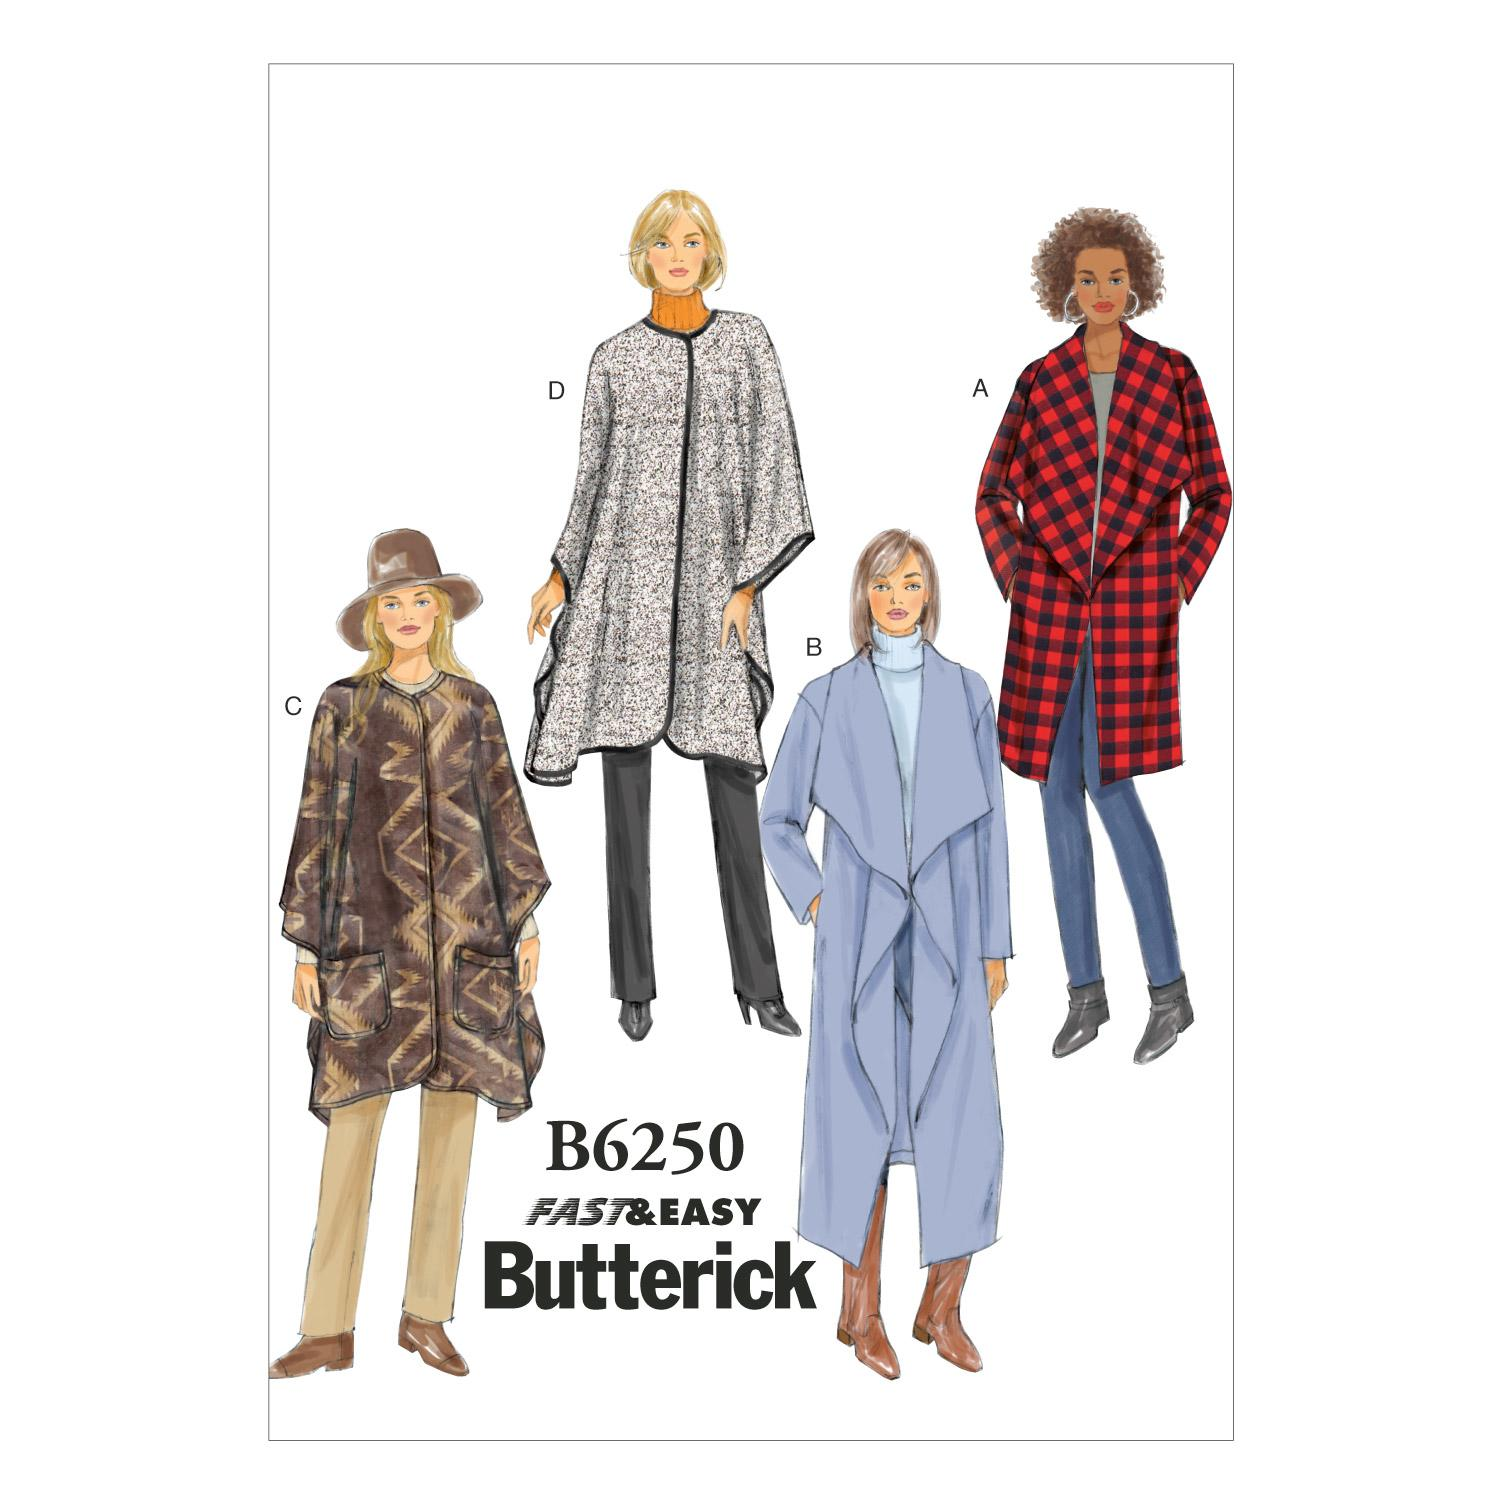 Butterick B6250 Misses' Jacket, Coat and Wrap